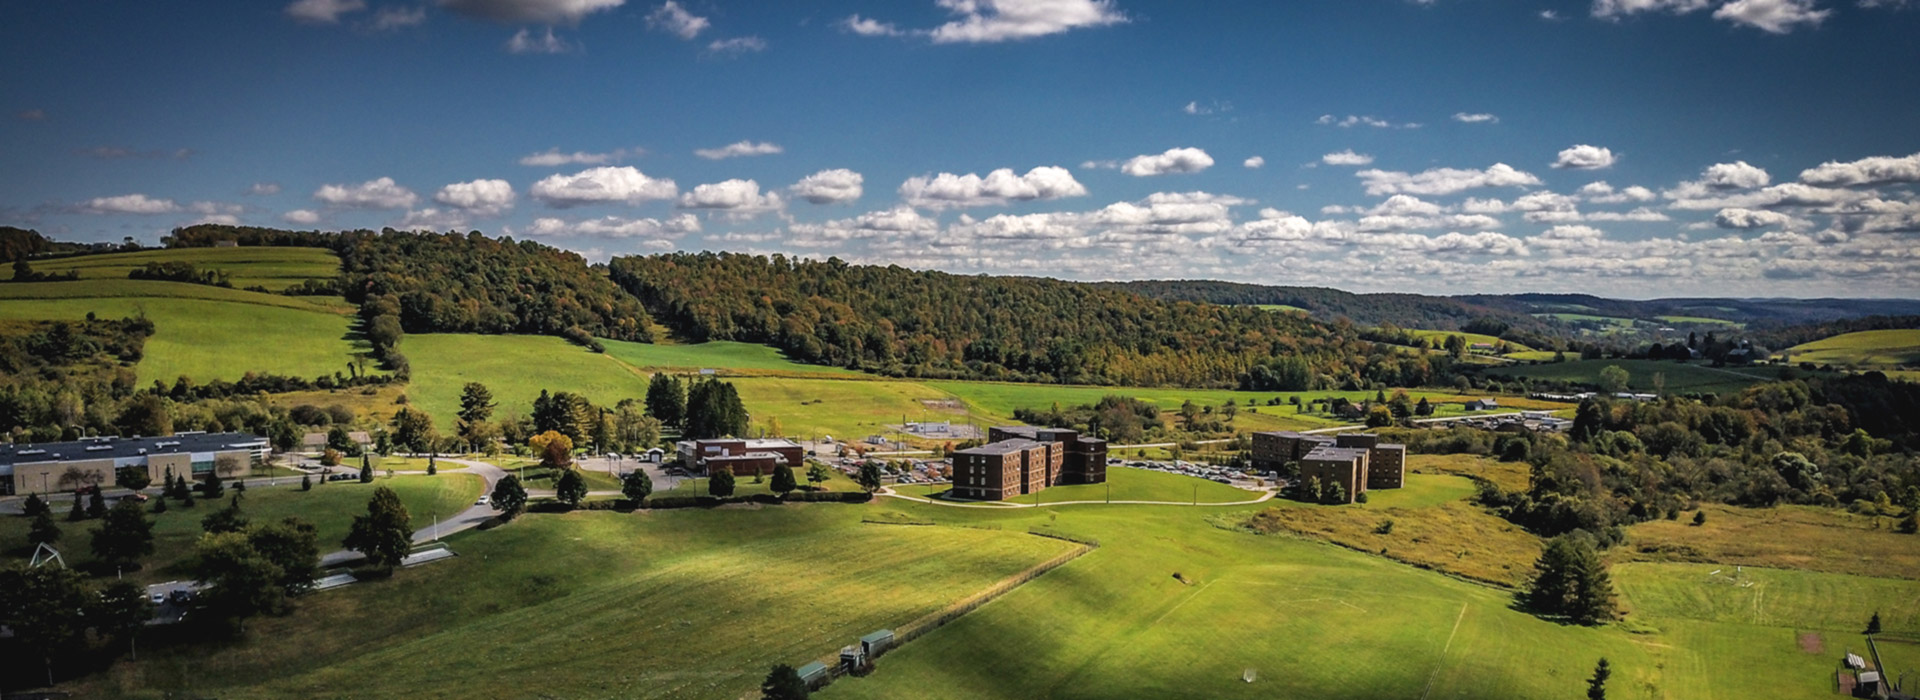 drone photo of campus